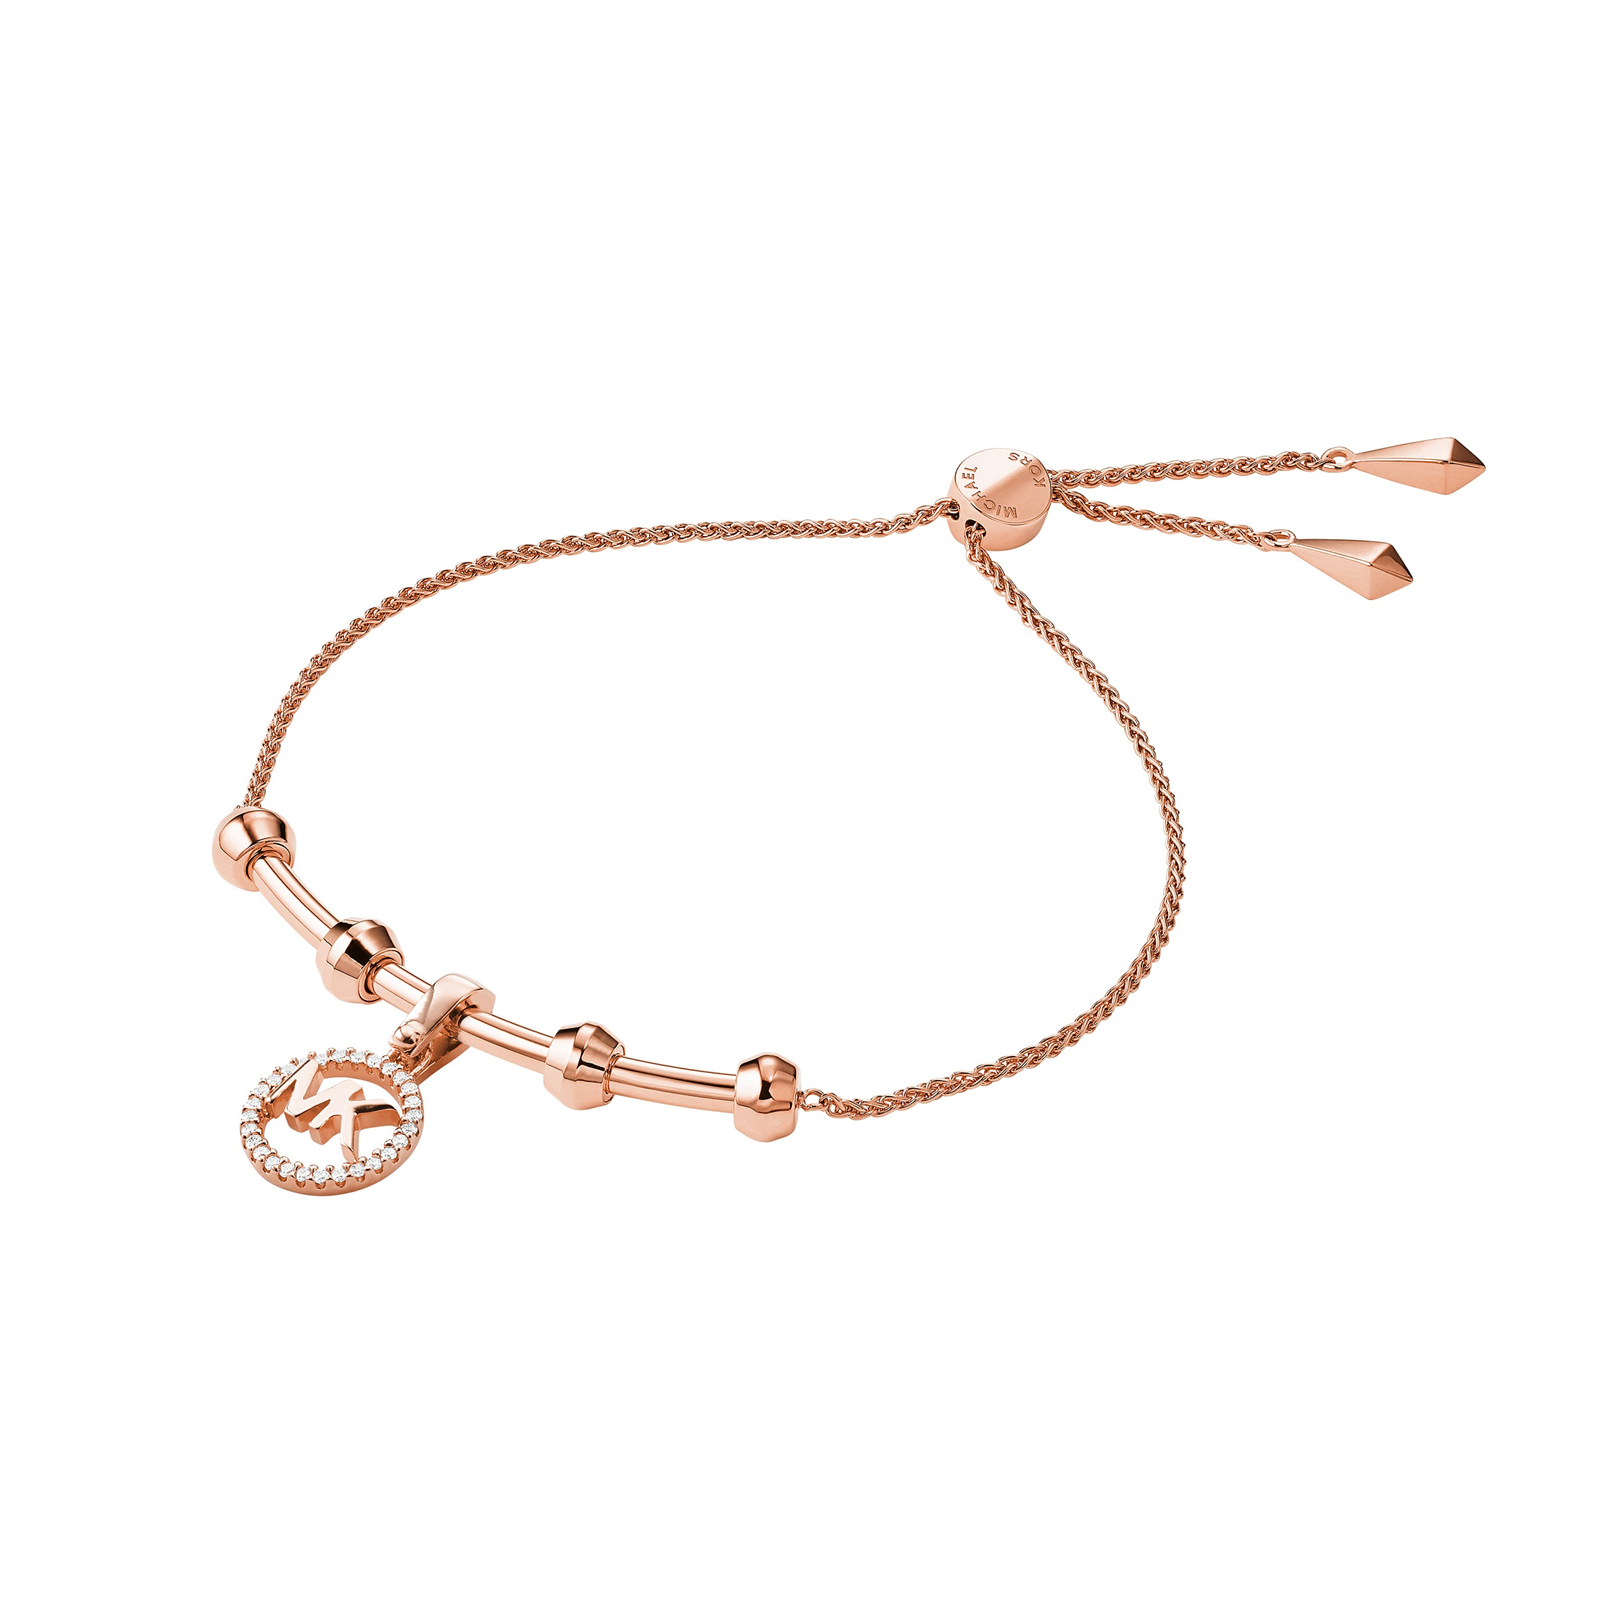 Michael Kors 14ct Rose Gold Plated CustomKors Charm Bracelet